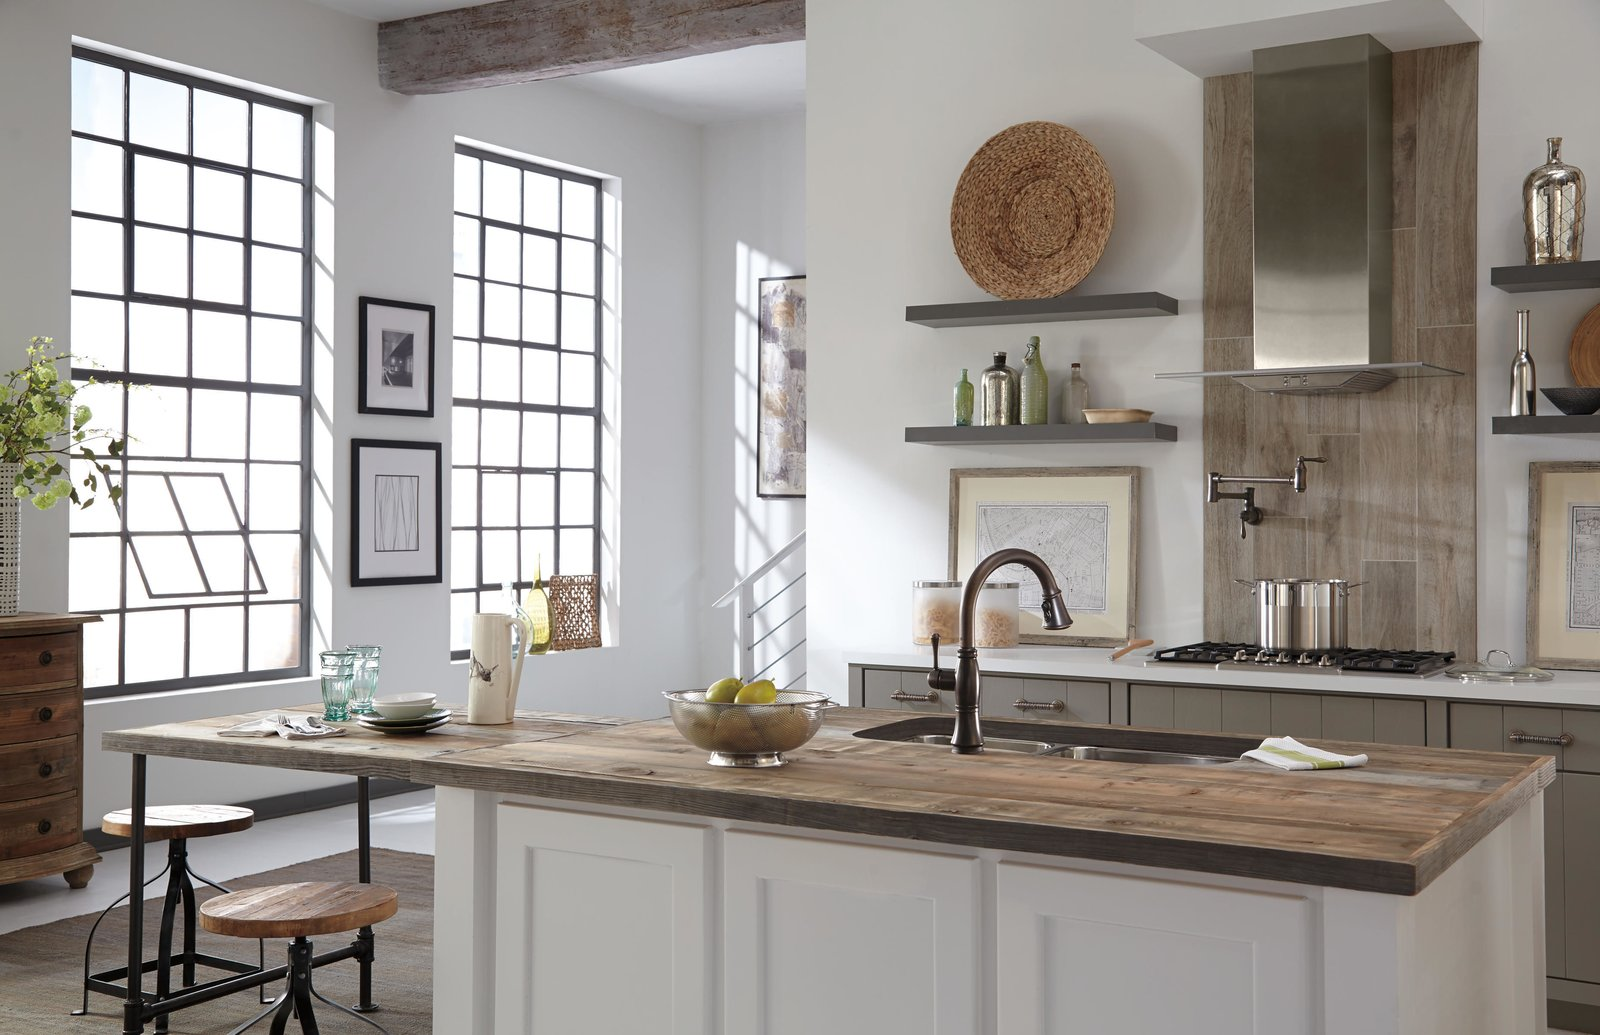 Kitchen with raw wood island countertop white cabinets and warehouse style windows.